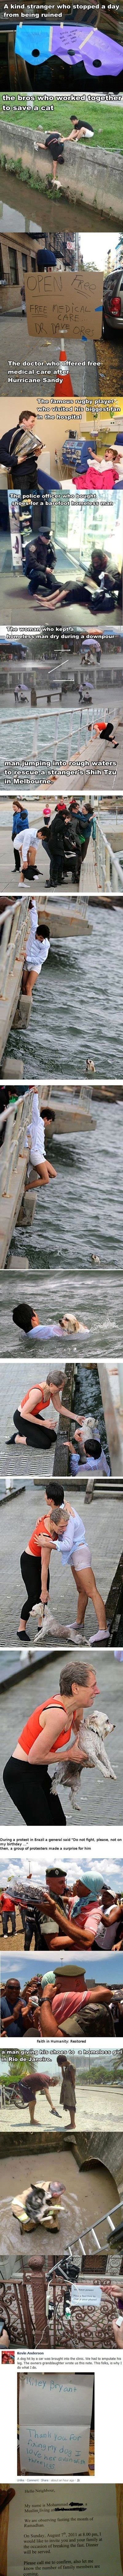 Reviving faith in humanity.